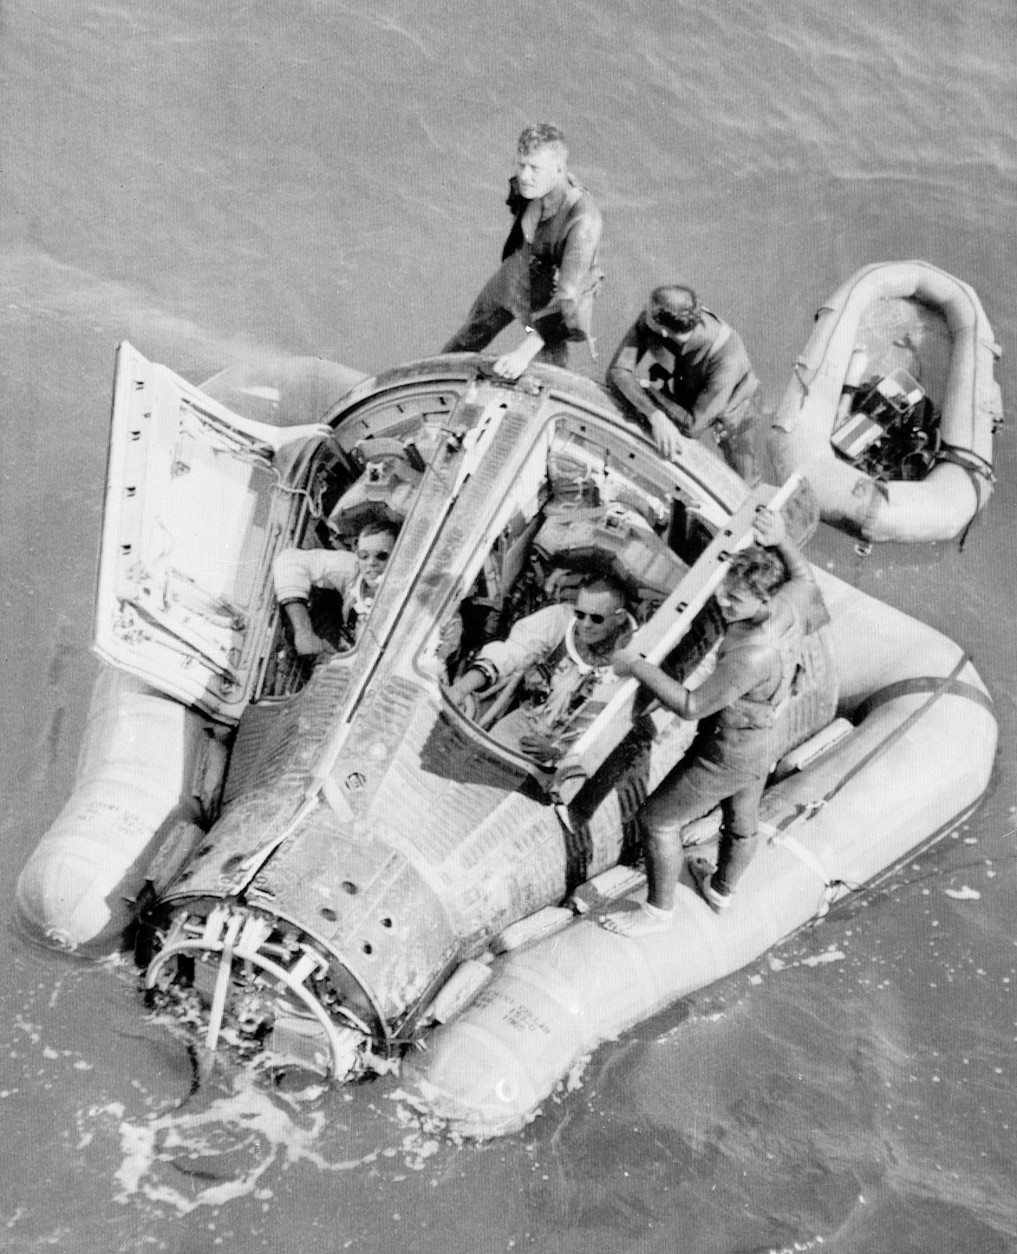 Astronauts David R. Scott, pilot, left, and Neil A. Armstrong, command pilot, sit in their Gemini 8 spacecraft after their emergency landing at 10:23 p.m. in the western Pacific Ocean, March 16, 1966.  Navy divers, who jumped into the ocean to attach flotation collar under the spacecraft, stand outside the capsule awaiting the destroyer USS Mason.  The scheduled three-day mission was terminated following complications.  The mission objective of rendezvous and dock with the Gemini Agena target vehicle (GATV) was accomplished.  (AP Photo/NASA)